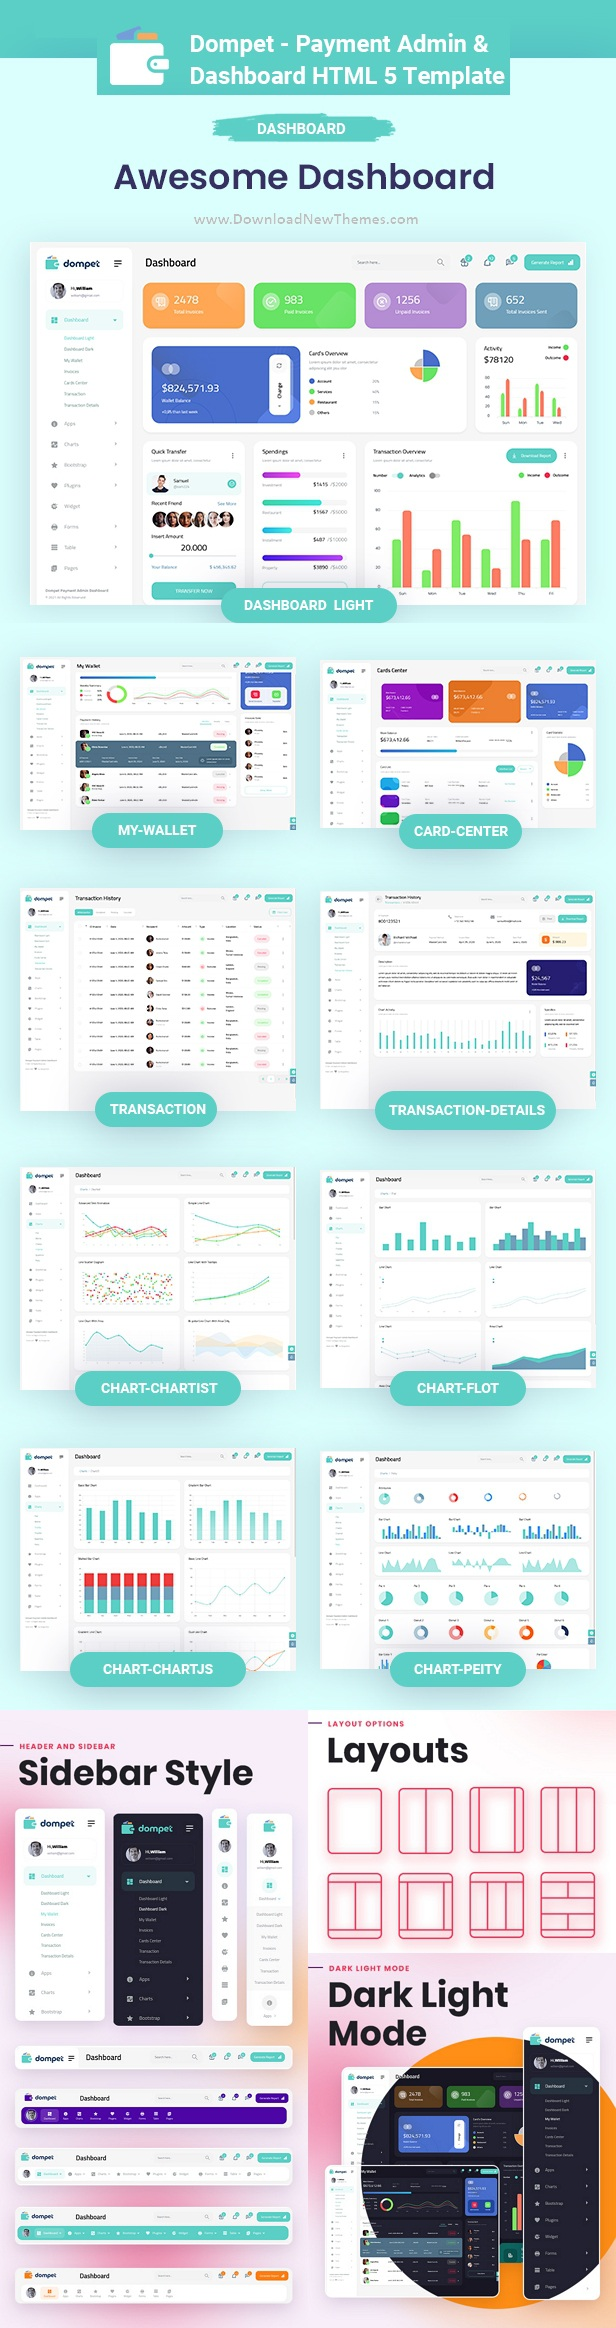 Payment Admin Dashboard Bootstrap Template